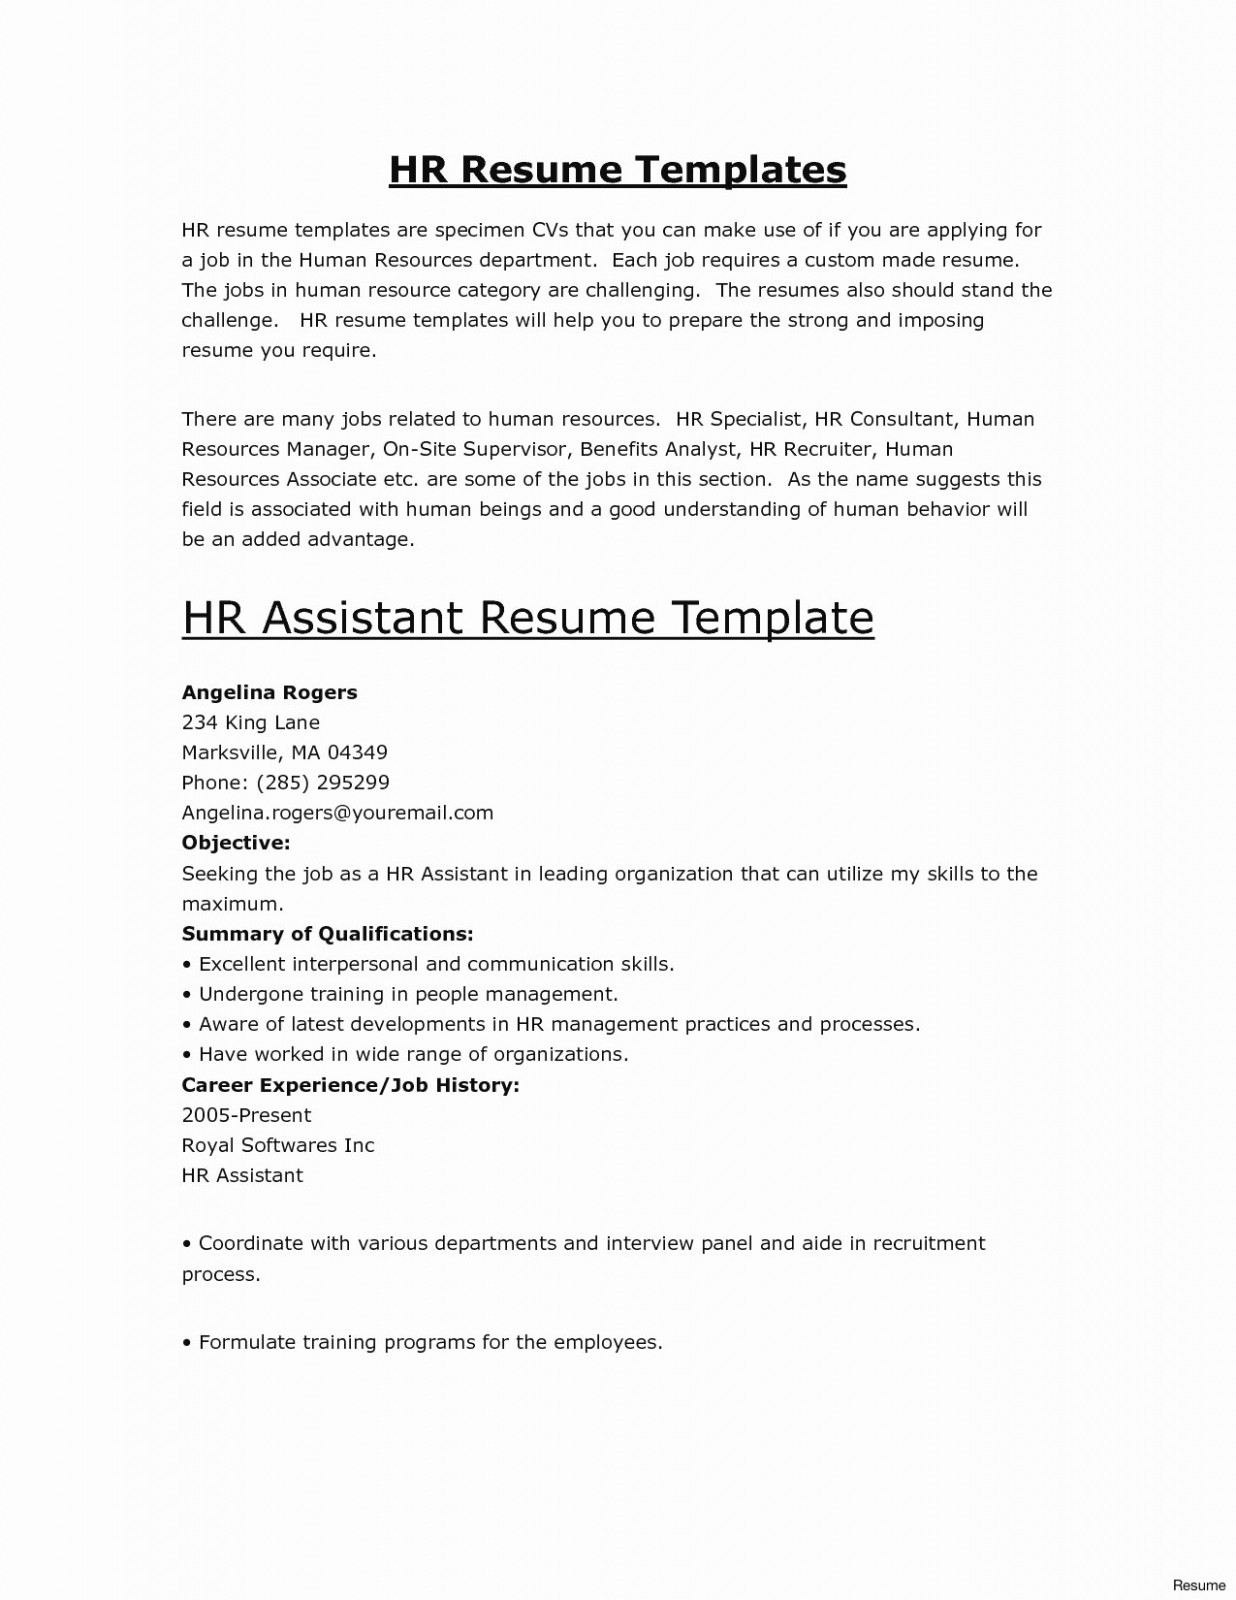 Resume Template for 16 Year Old - 23 Resume for Financial Analyst